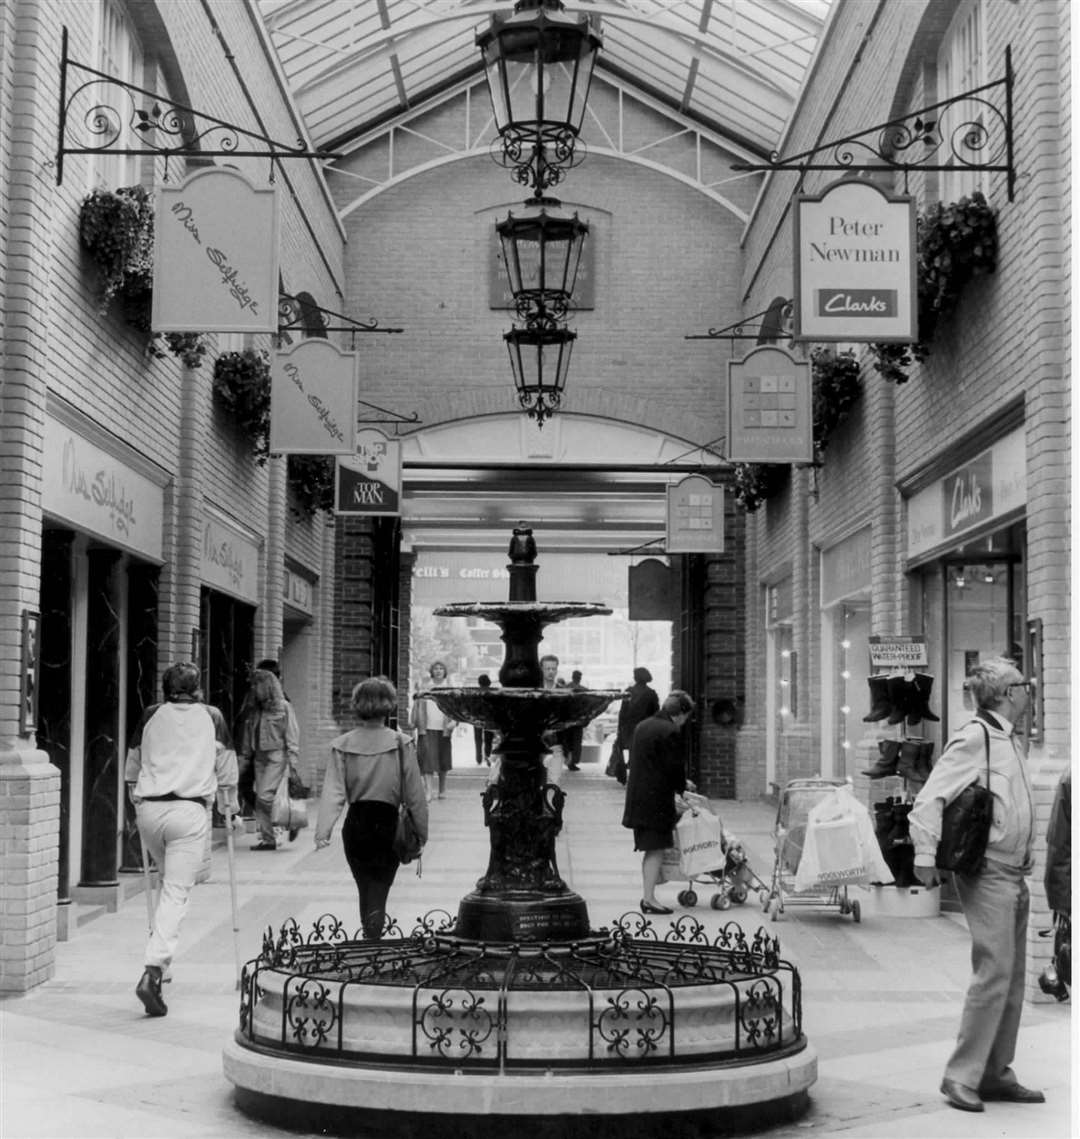 Marlowe Arcade Canterbury 1990 - the arcade still exists and is home to Copperfield and HMV